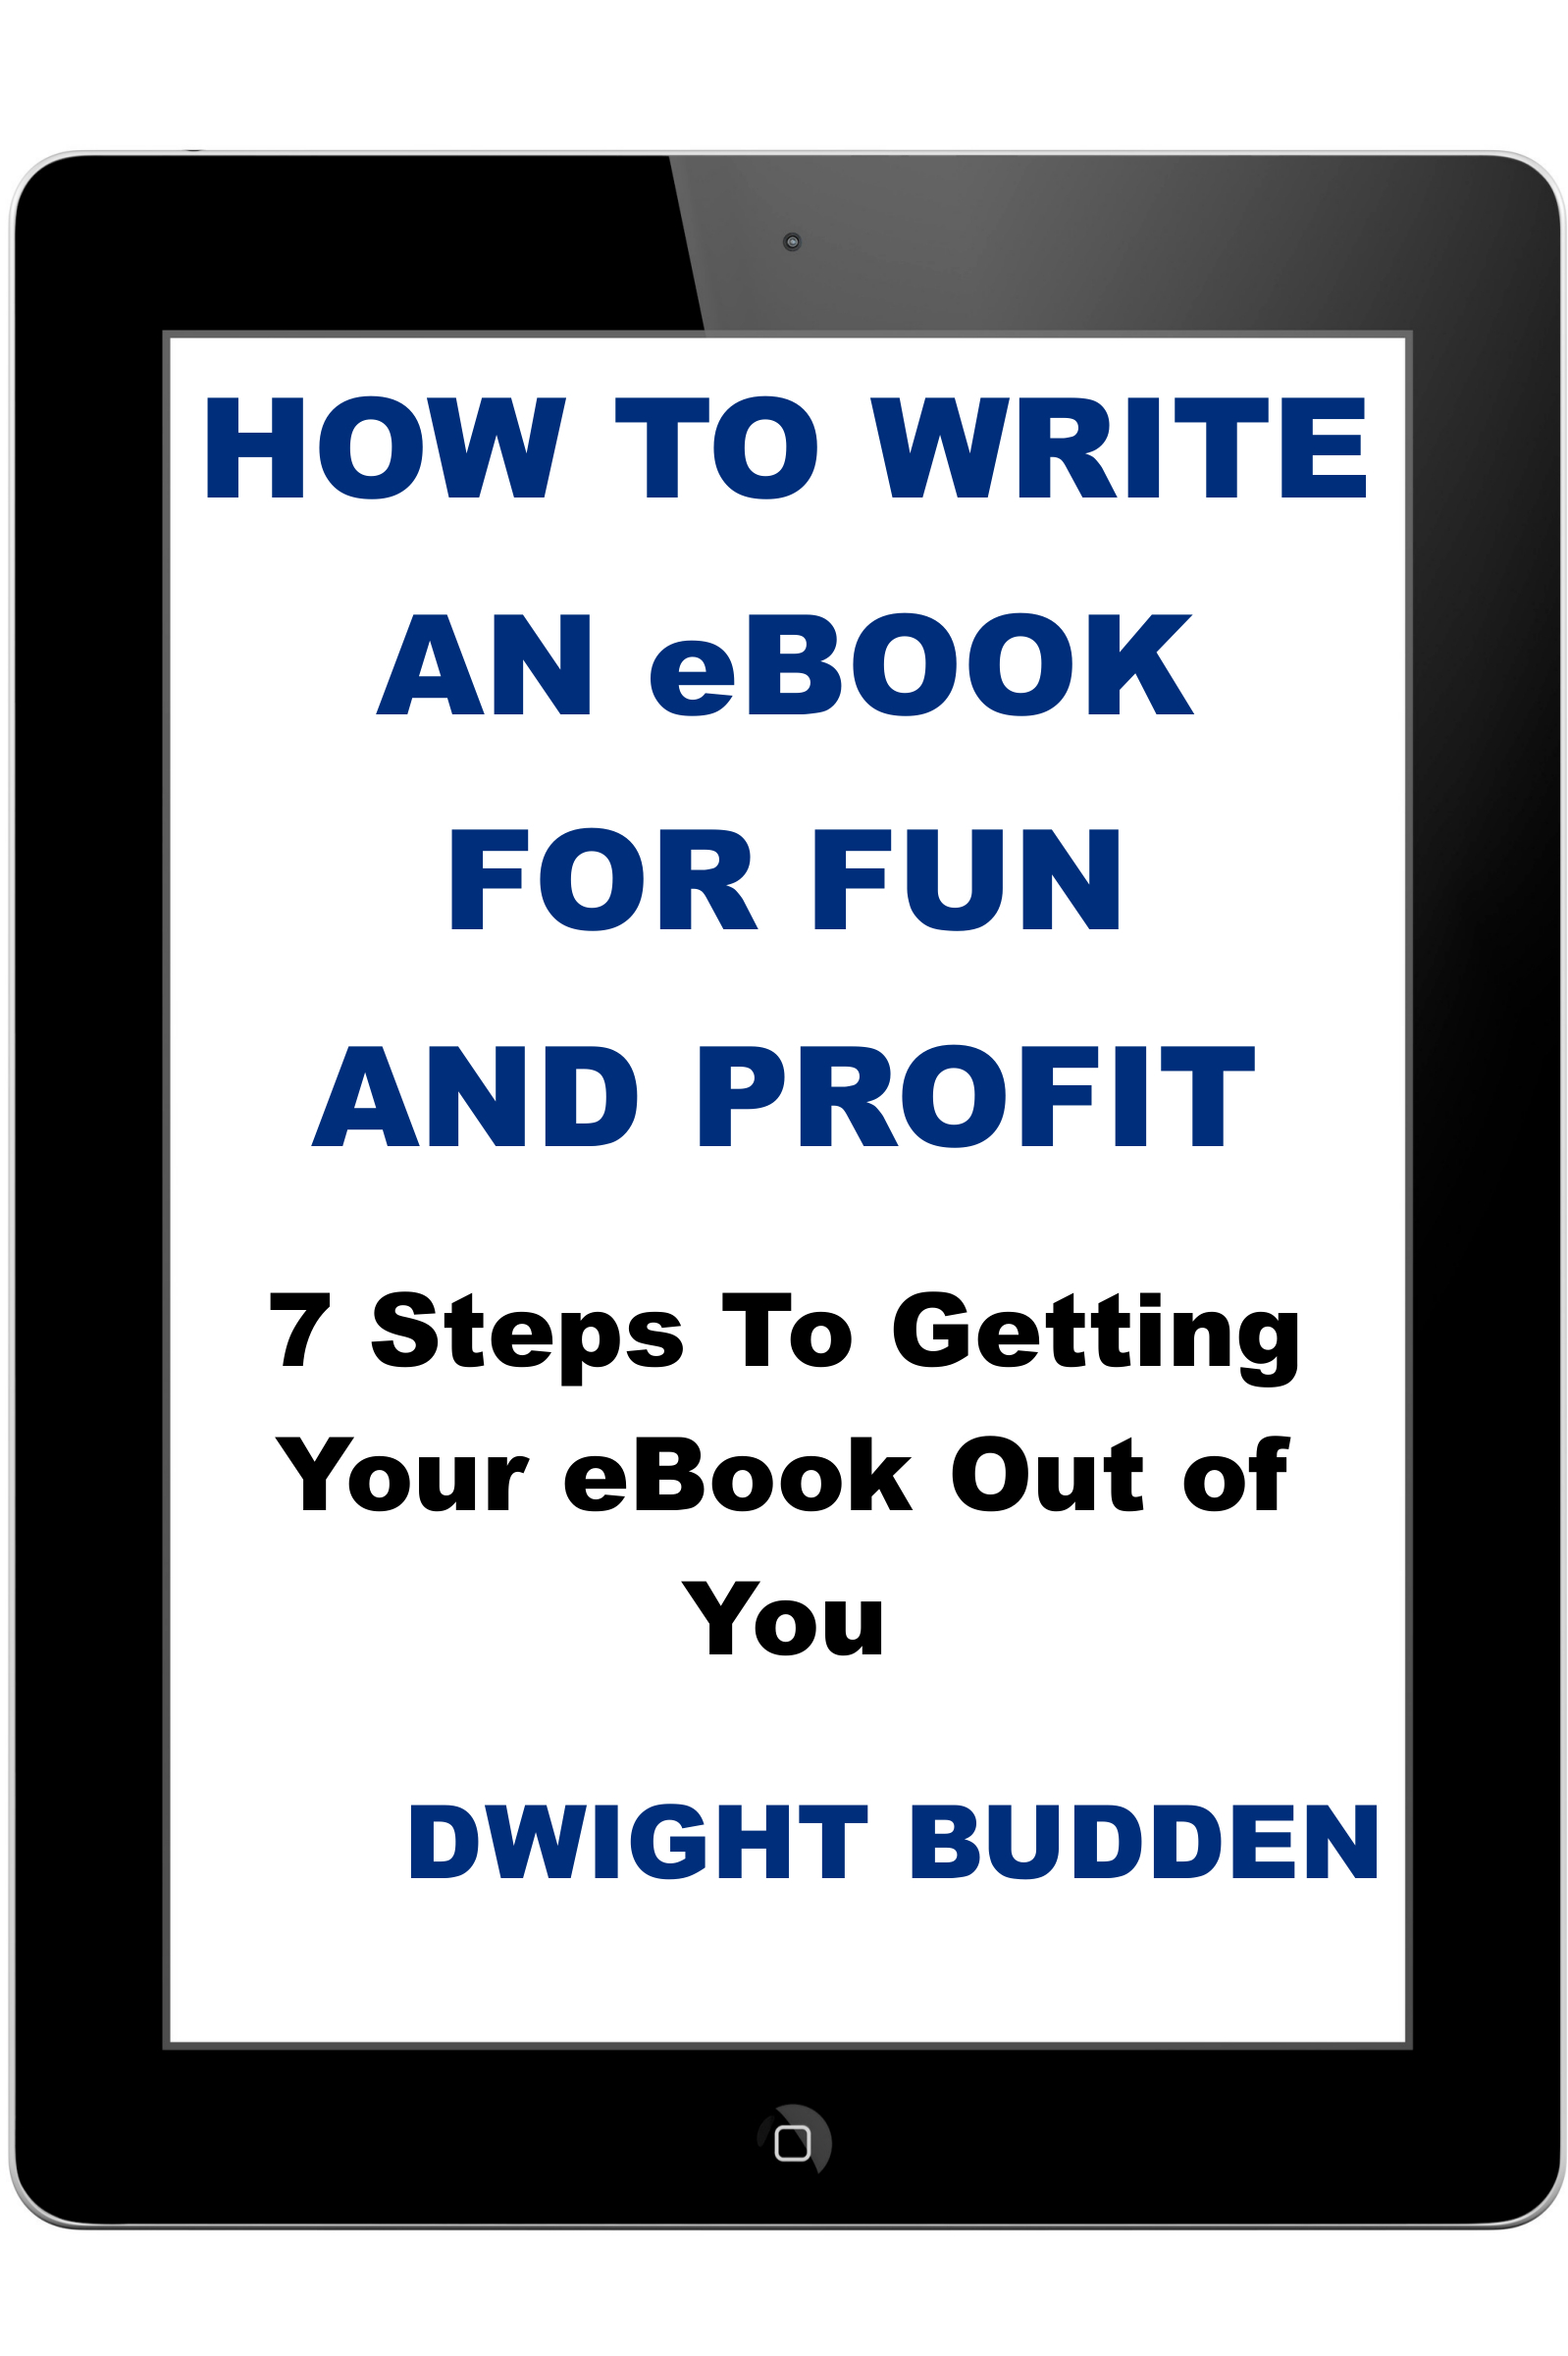 How To Write An eBook For Fun and Profit